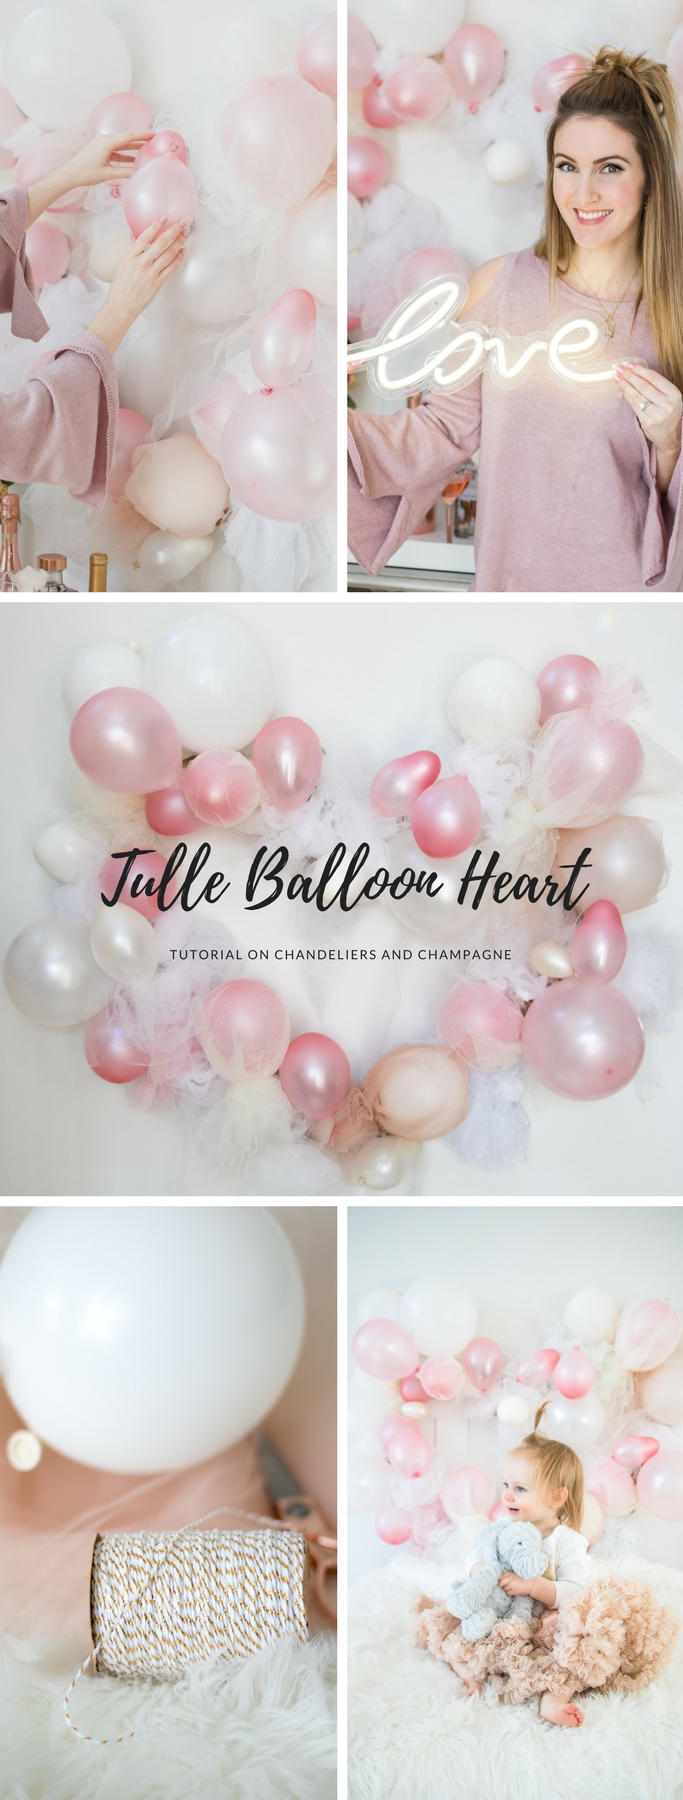 Tulle Balloon Heart Tutorial for Valentine's Day now posted on Chandeliers and Champagne!